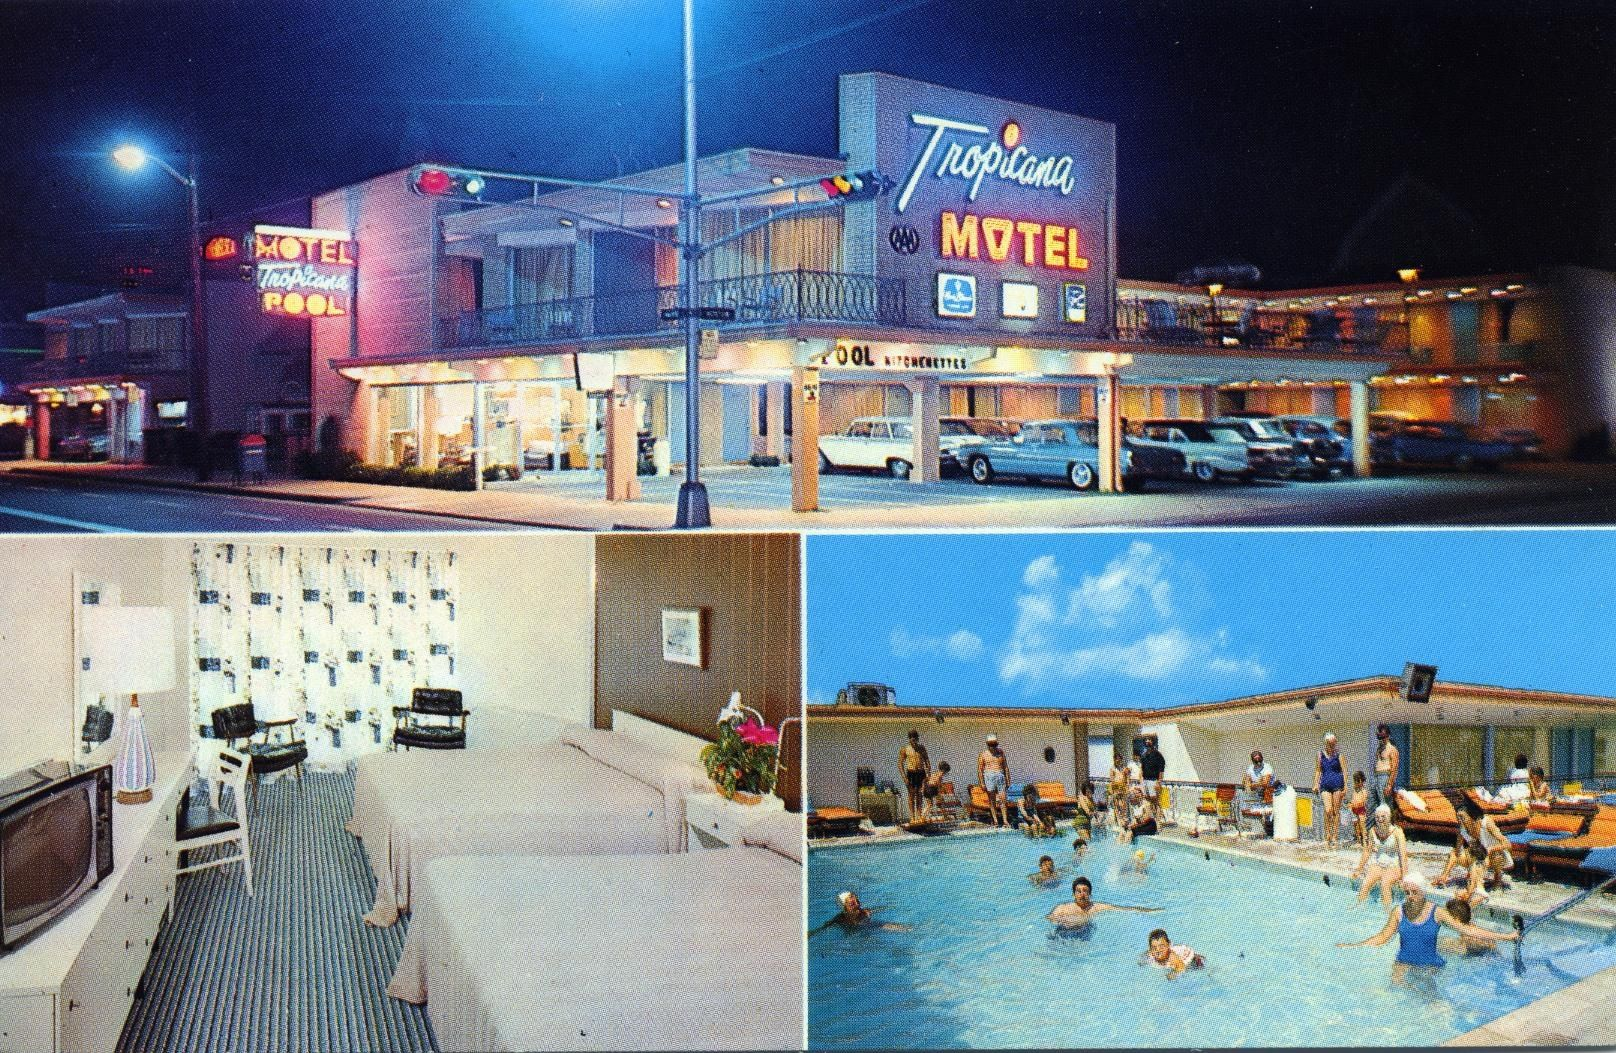 Tropicana Motel Atlantic City Nj Atlantic City Tropicana Motel Jewel Of The Seas